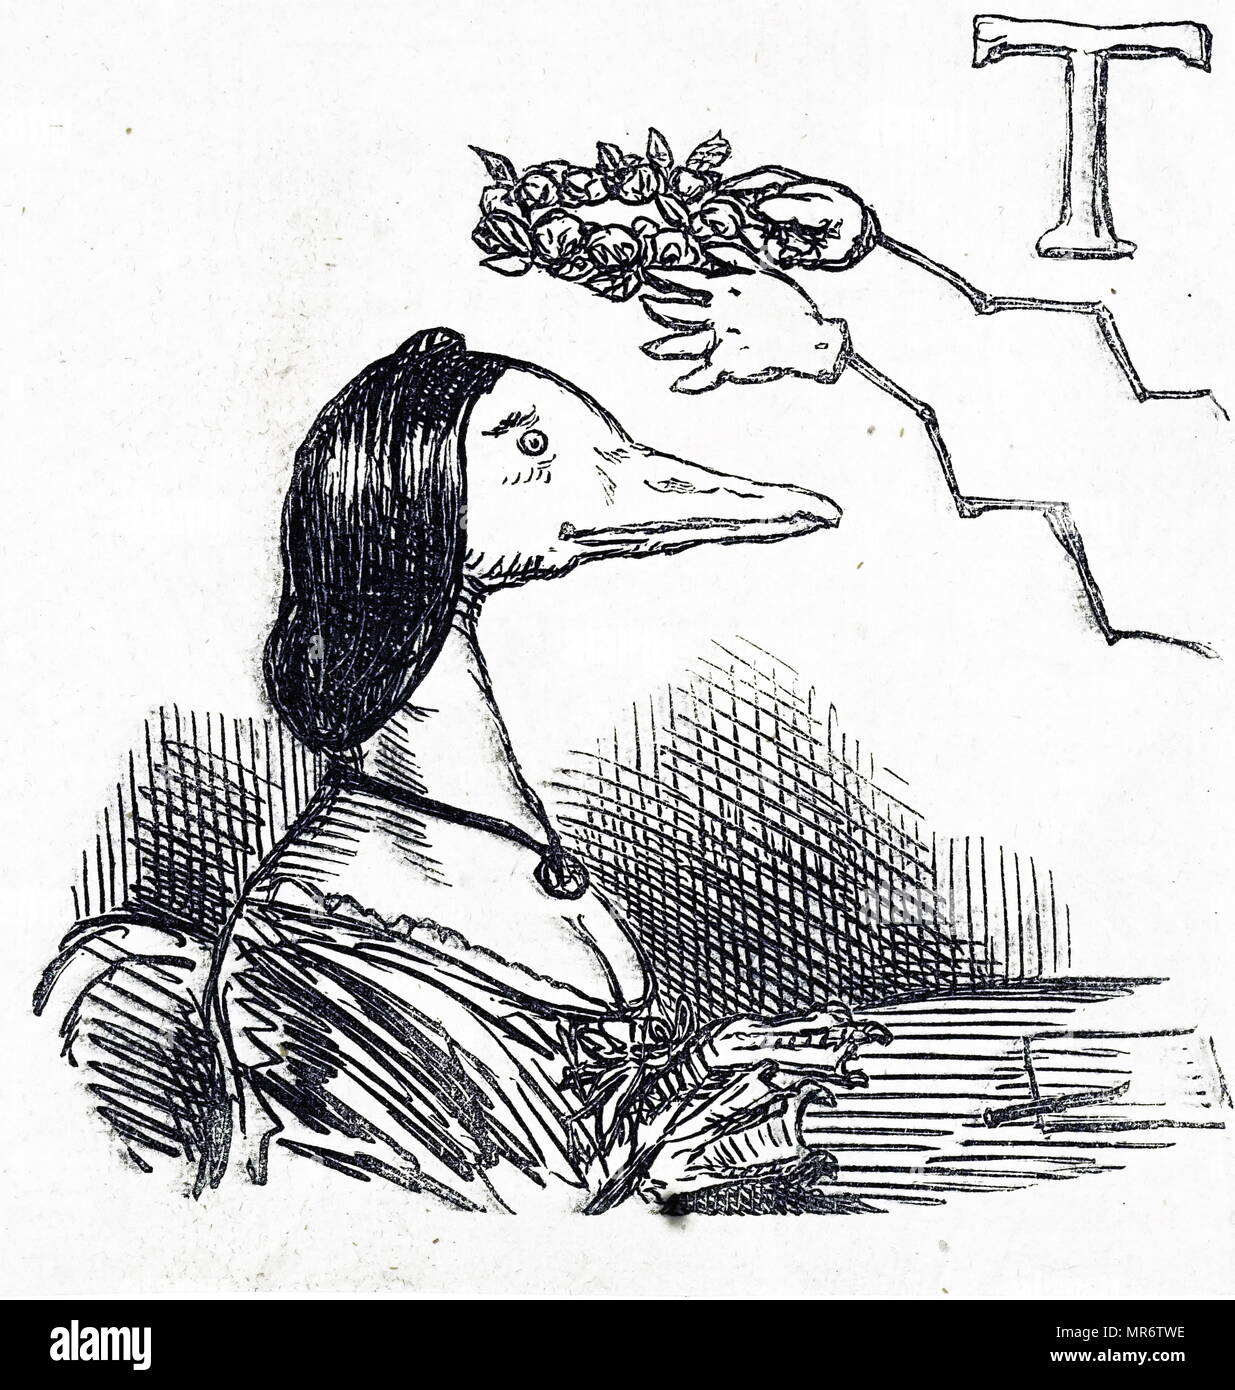 1870 cartoon showing a zoomorphic duck receiving a laurel garland as a fashion accessory. English 19th century; - Stock Image